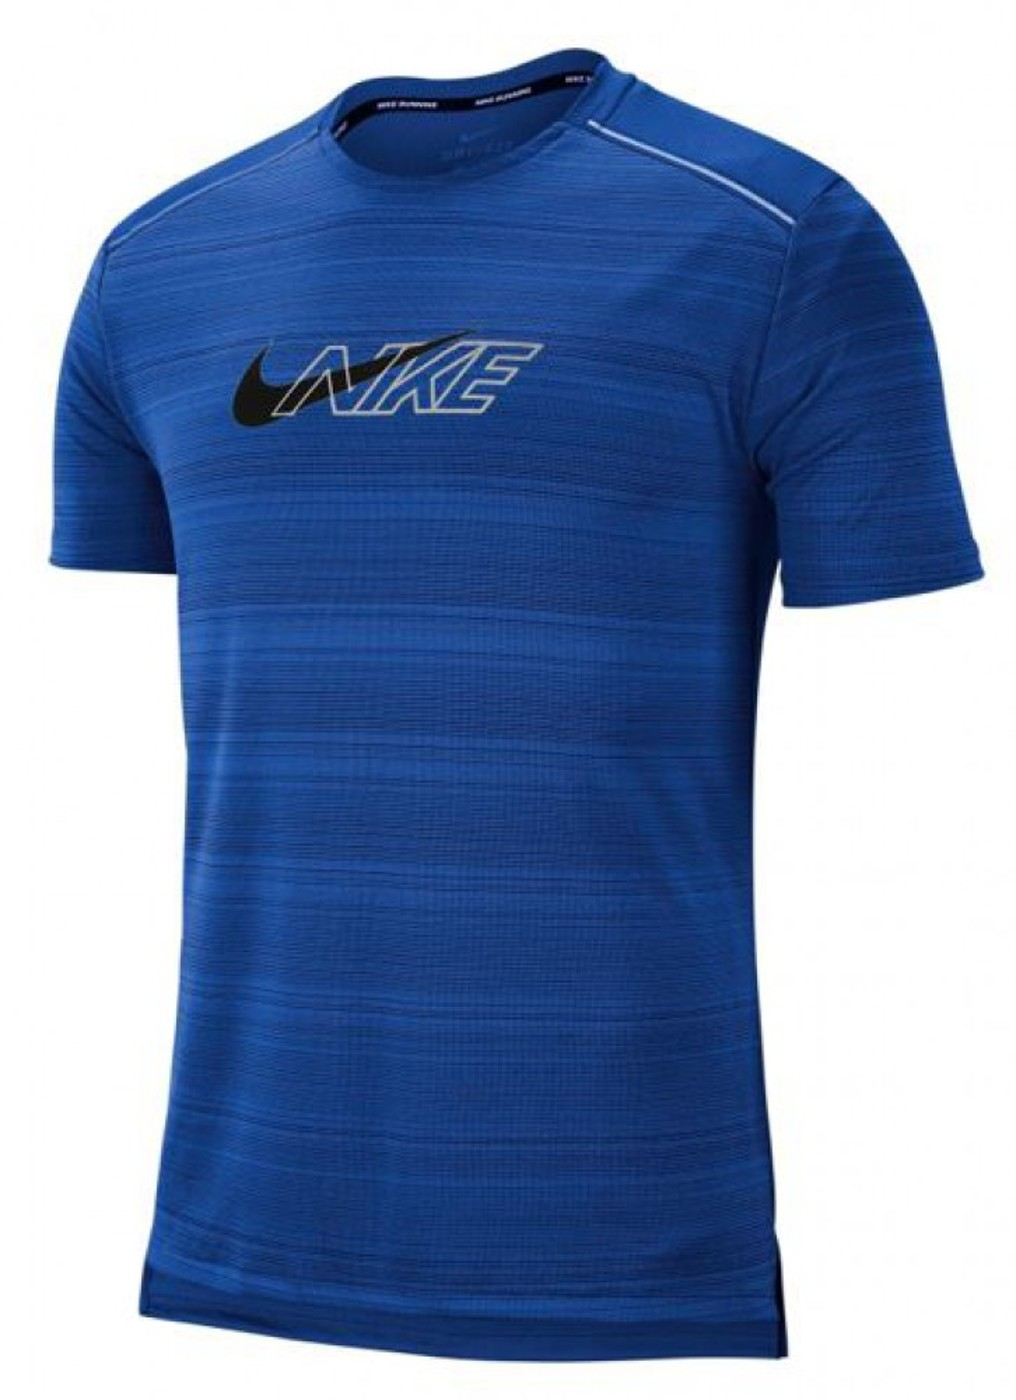 NIKE M NK DF MILER SS FLASH NV - Herren